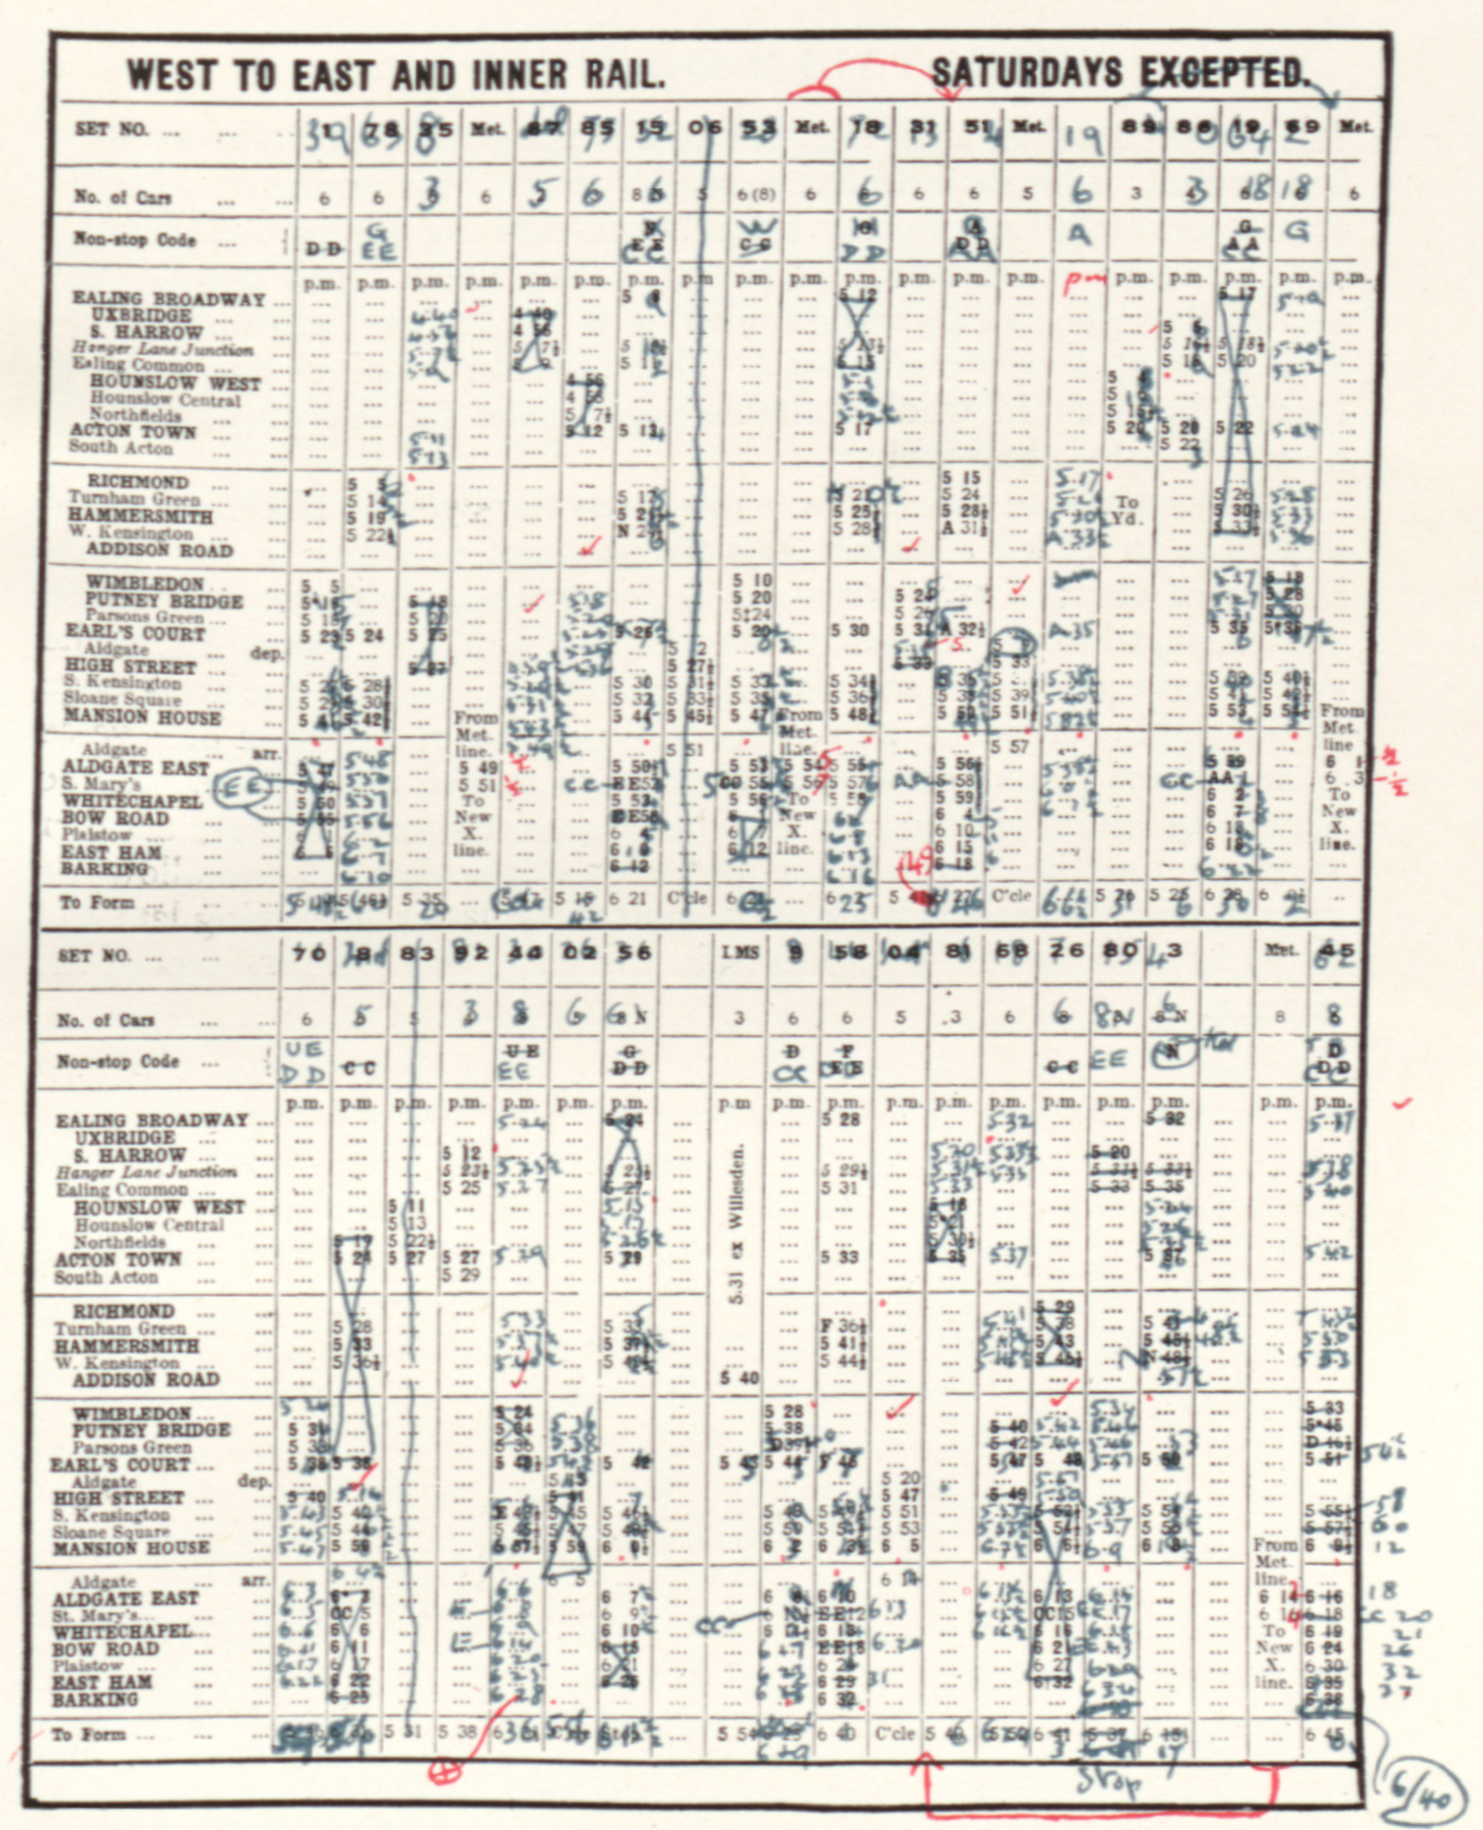 Henry Charles Beck Material Culture And The London Tube Map Of 1933 Home Outlet Wiring Diagram House Diagrams Darren Criss Fig 8 Revised Timetable After Interval Changes On District Line Ca 1928